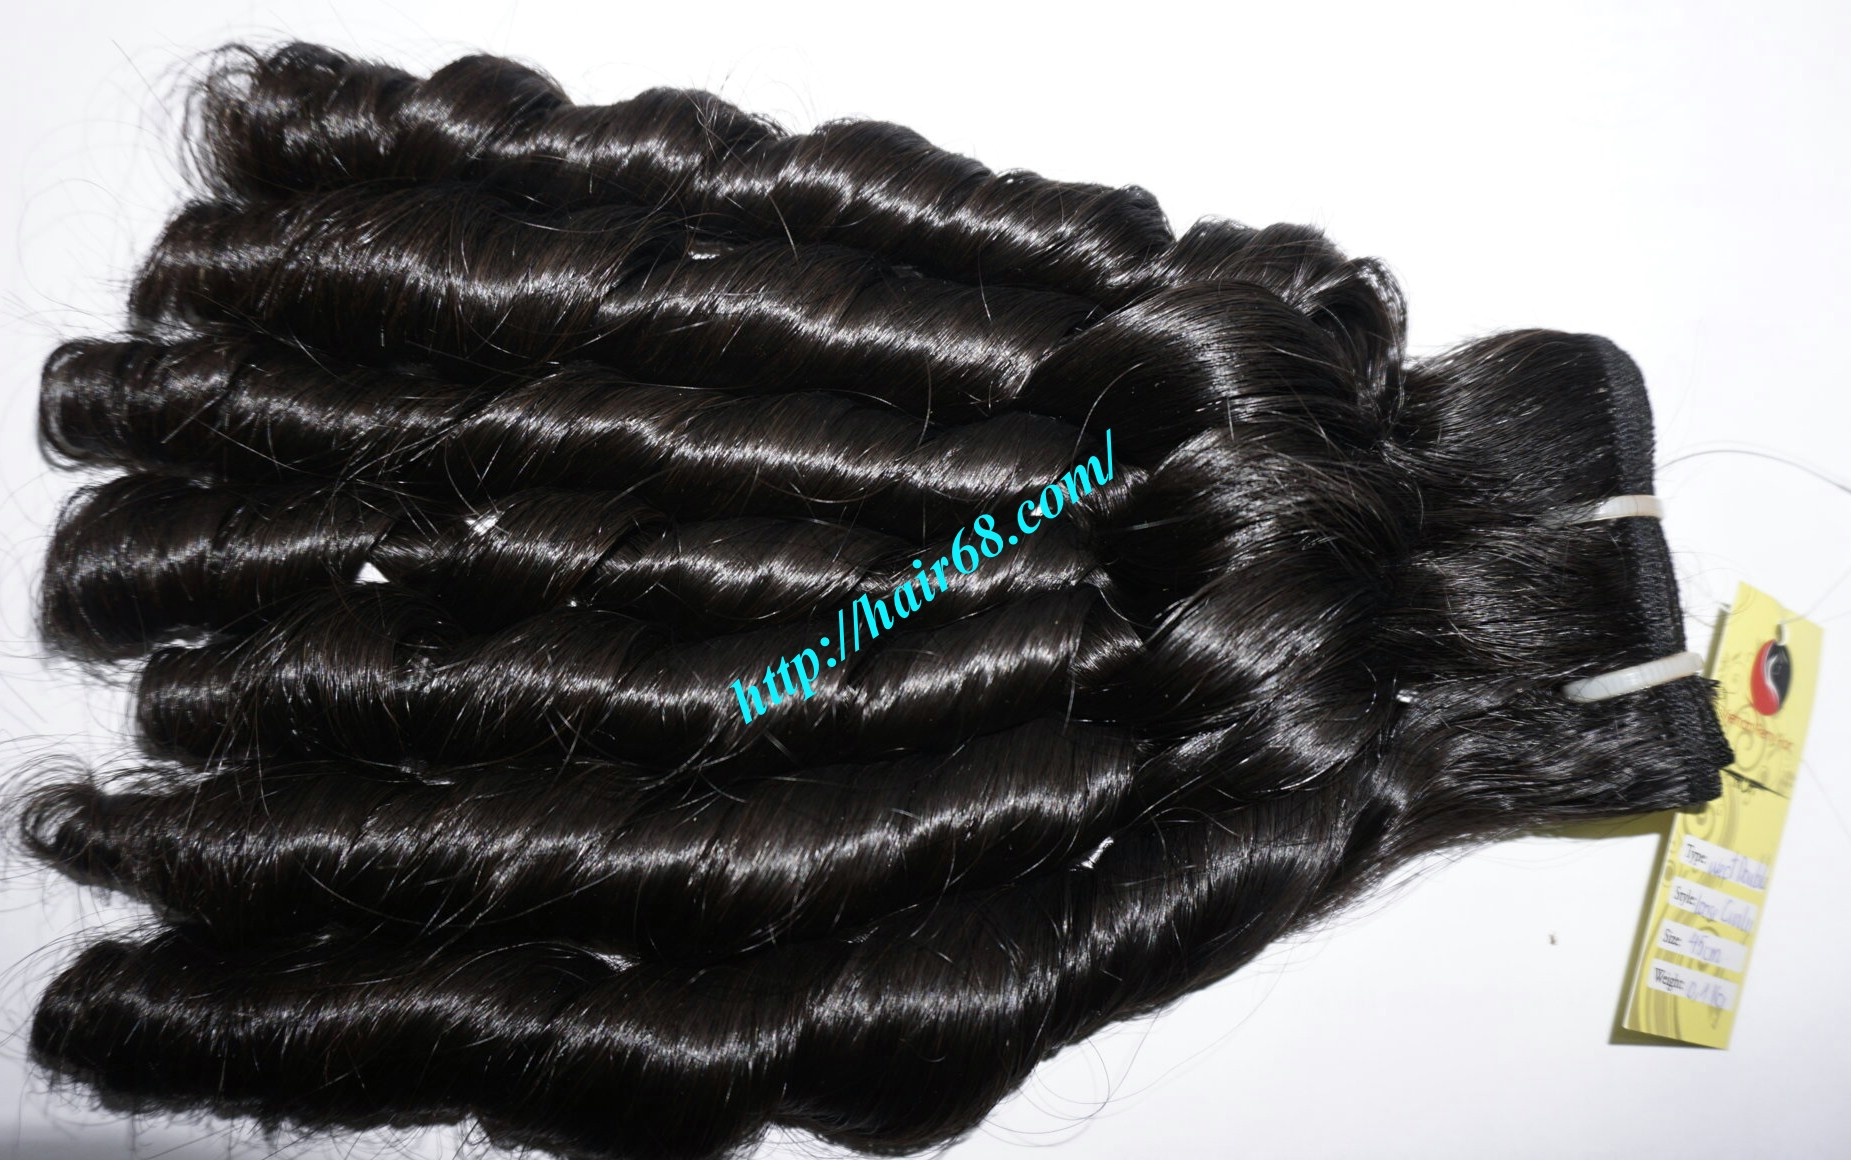 20 inch - Weave Loose Curly Hair Extensions - Double Drawn 6